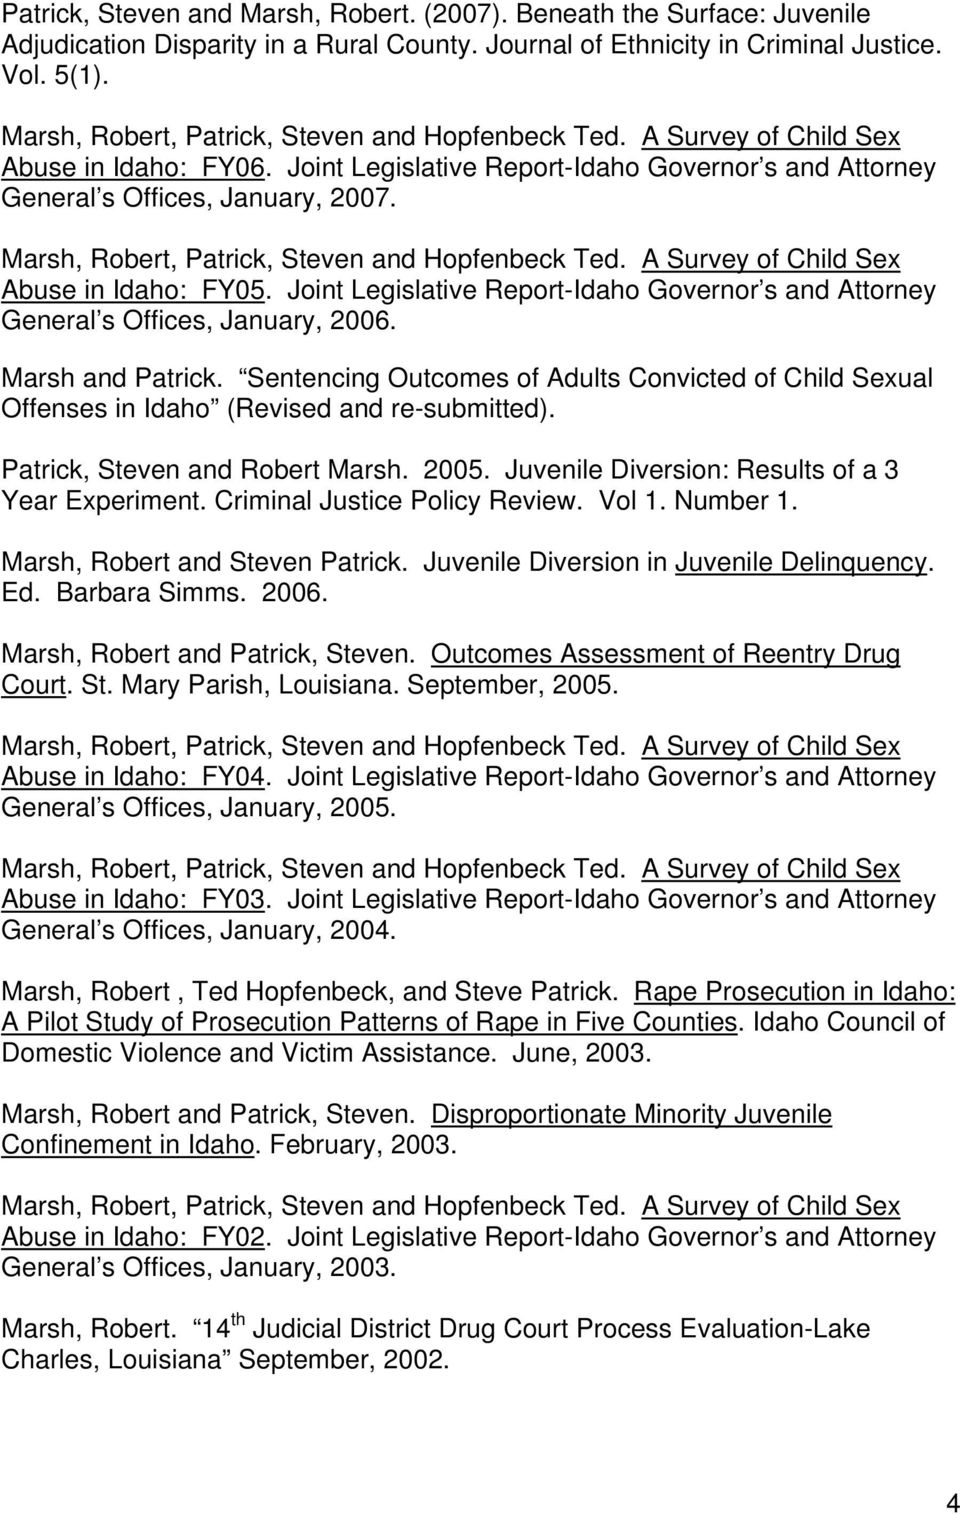 Marsh, Robert, Patrick, Steven and Hopfenbeck Ted. A Survey of Child Sex Abuse in Idaho: FY05. Joint Legislative Report-Idaho Governor s and Attorney General s Offices, January, 2006.